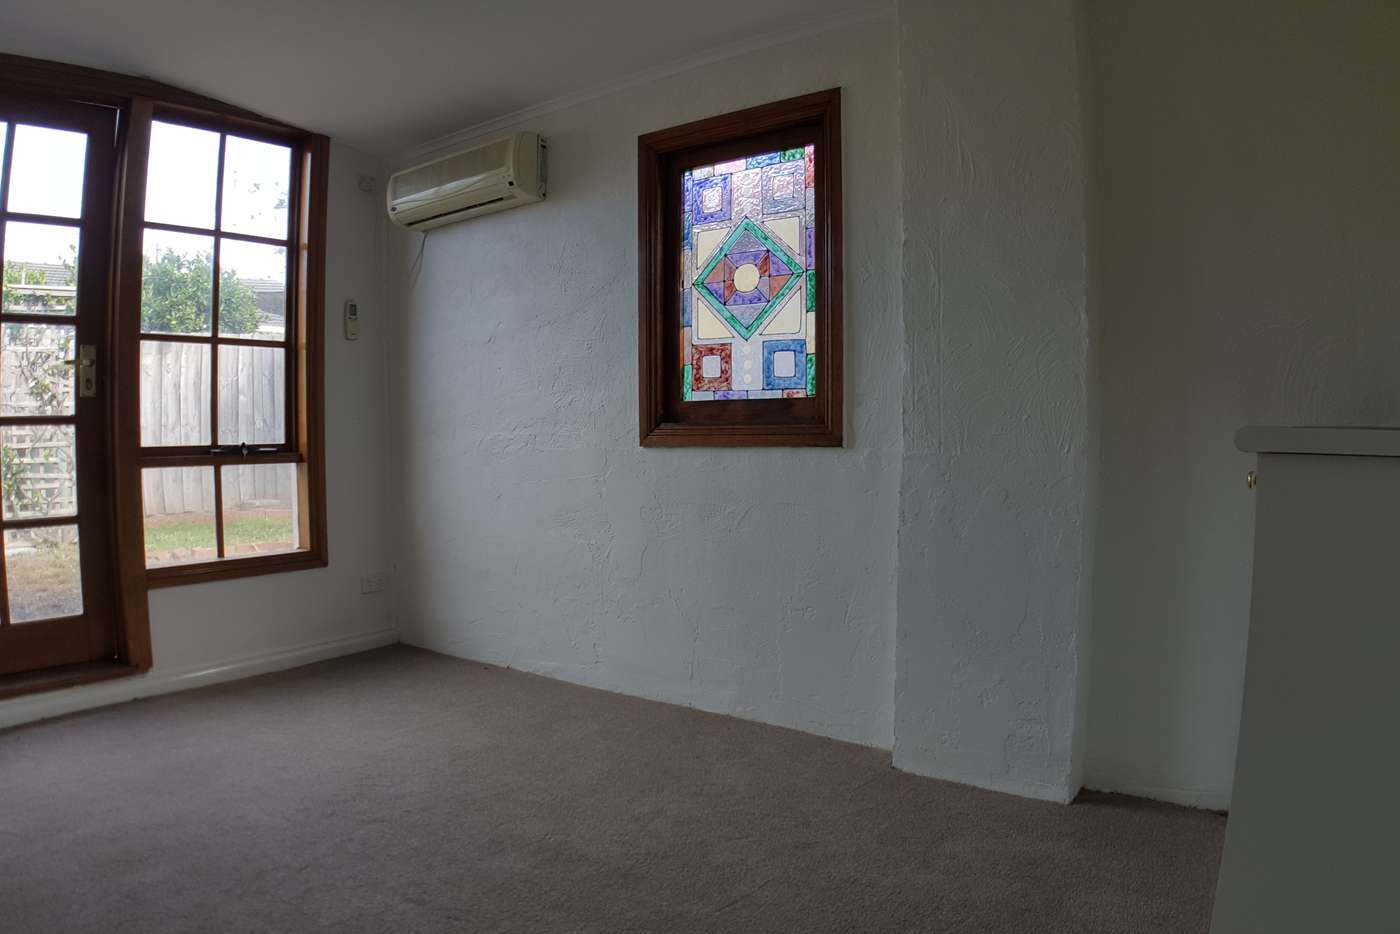 Sixth view of Homely house listing, 134 Darling Road, Malvern East VIC 3145